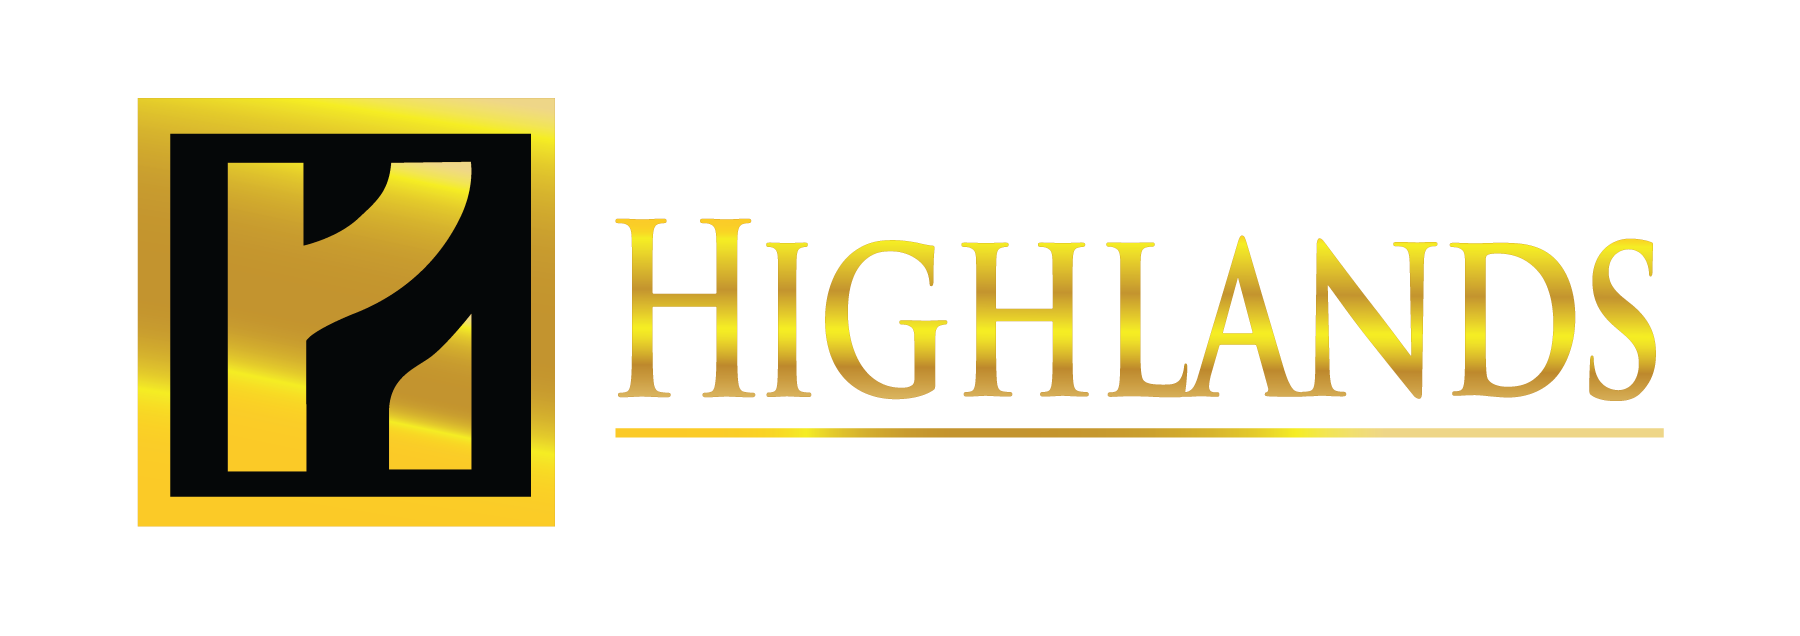 Graham Parhams and Highlands Residential Mortgage helps investors find the best loan for residential real estate